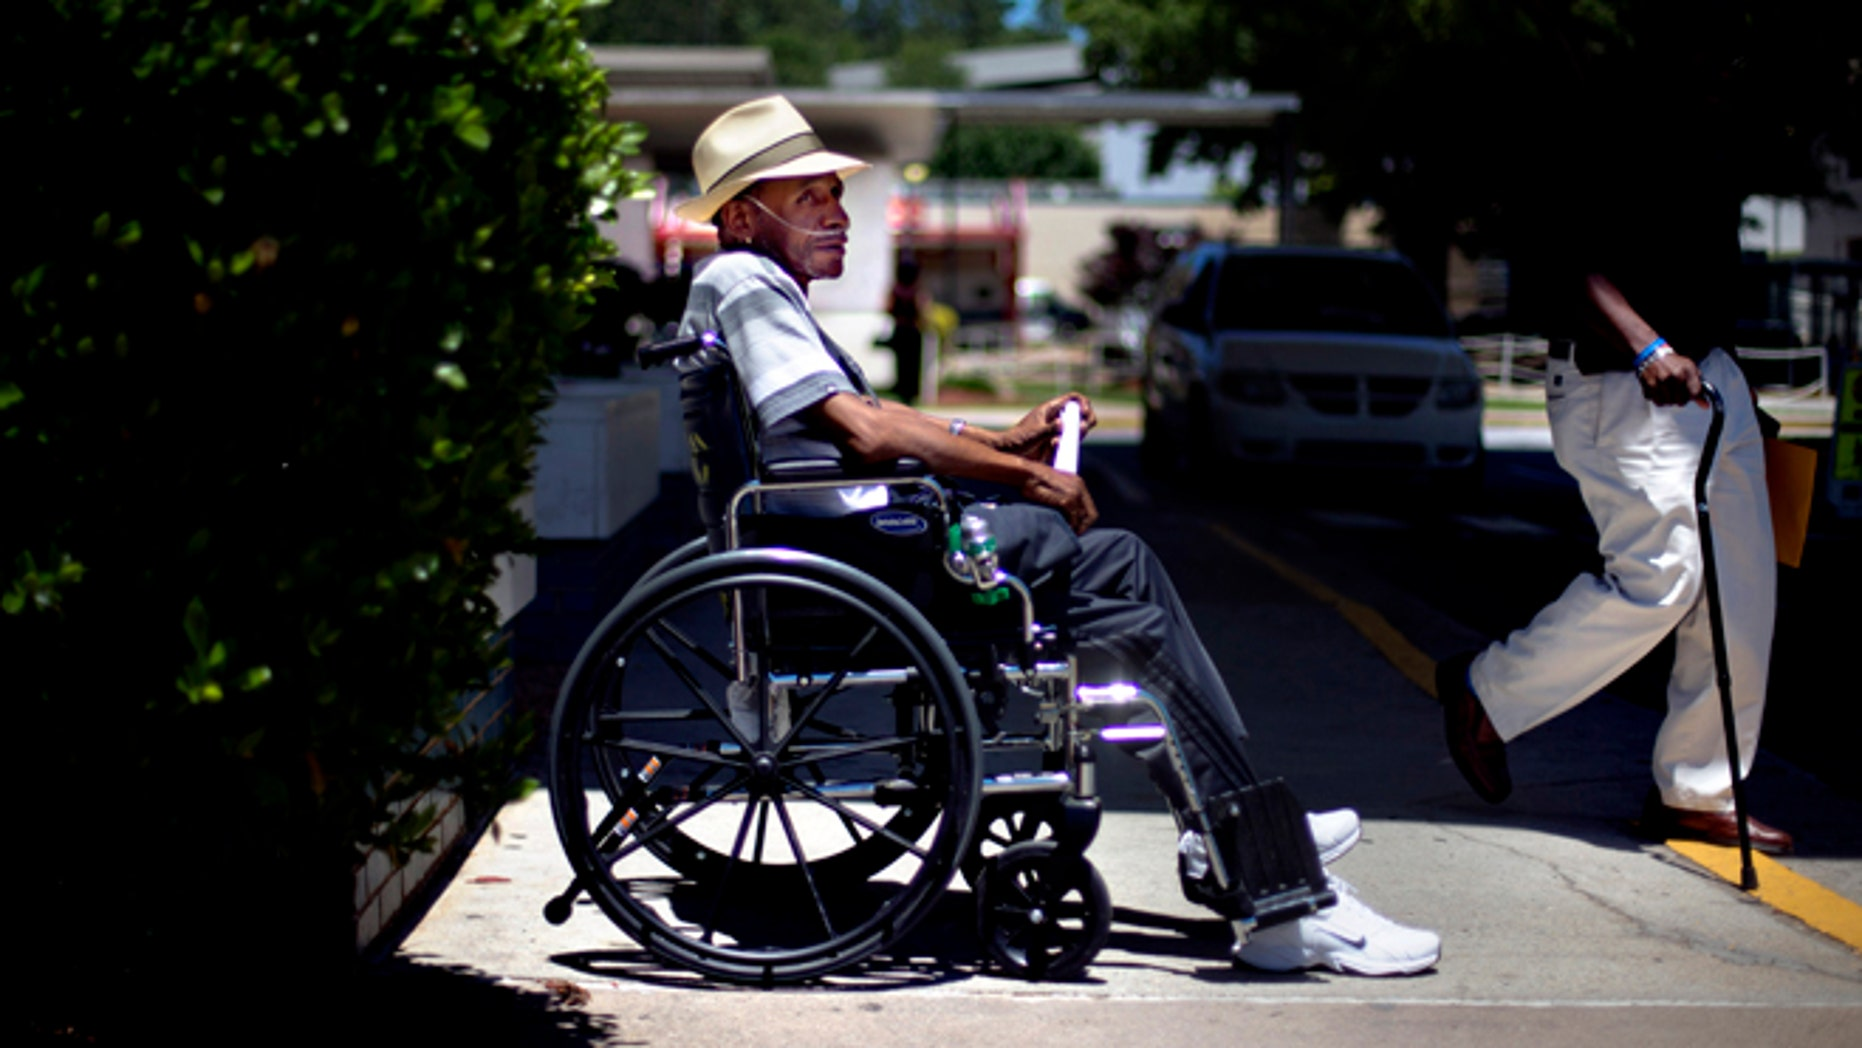 May 24, 2013, Veteran Roy Wiltz, 66, waits to be picked up outside the Atlanta VA Medical Center after a medical appointment, in Atlanta, Ga.